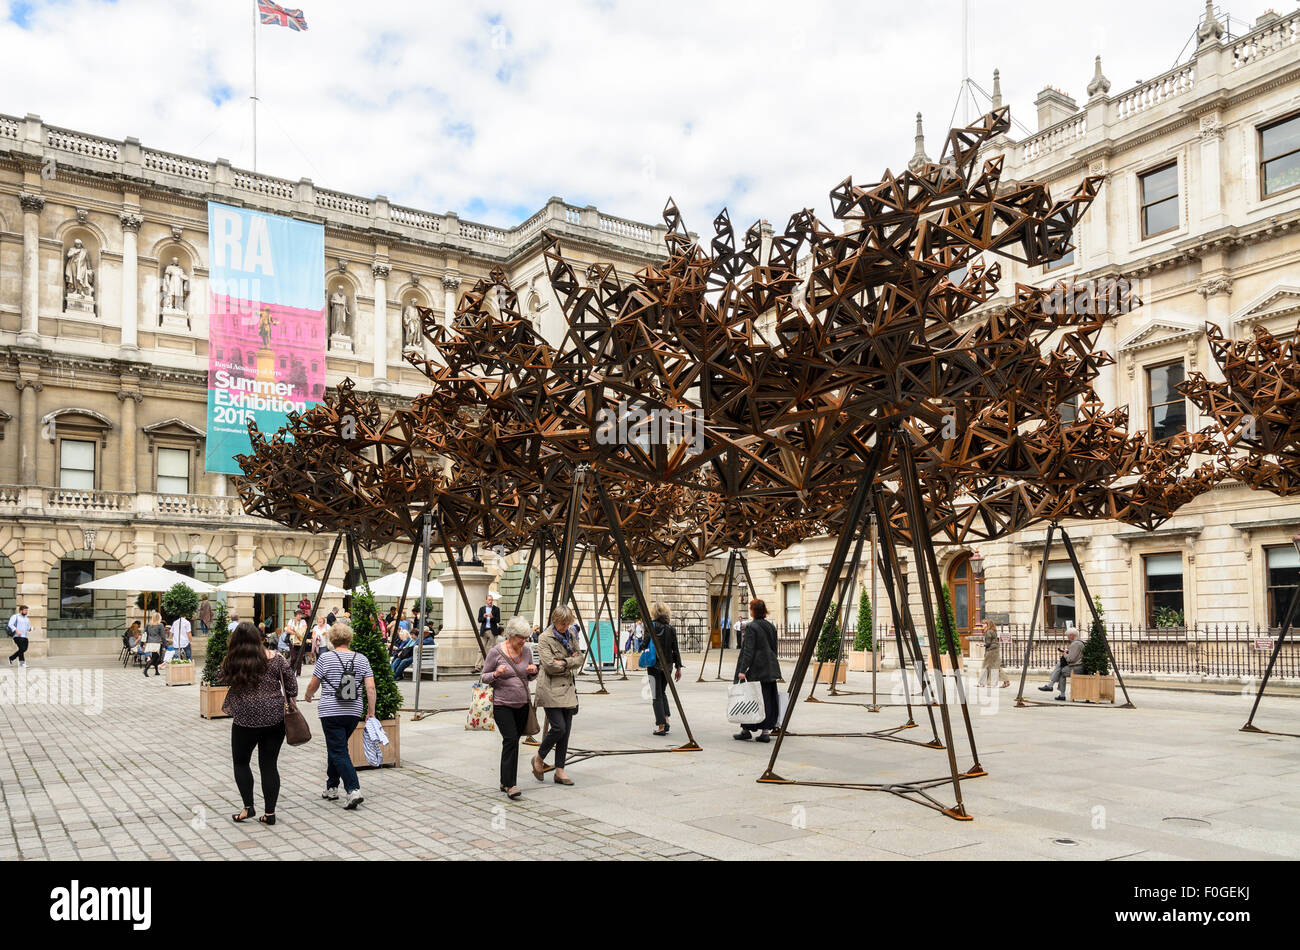 A sculpture by Conrad Shawcross called The Dappled Light of the Sun in the courtyard of The Royal Academy of Arts, London. Stock Photo